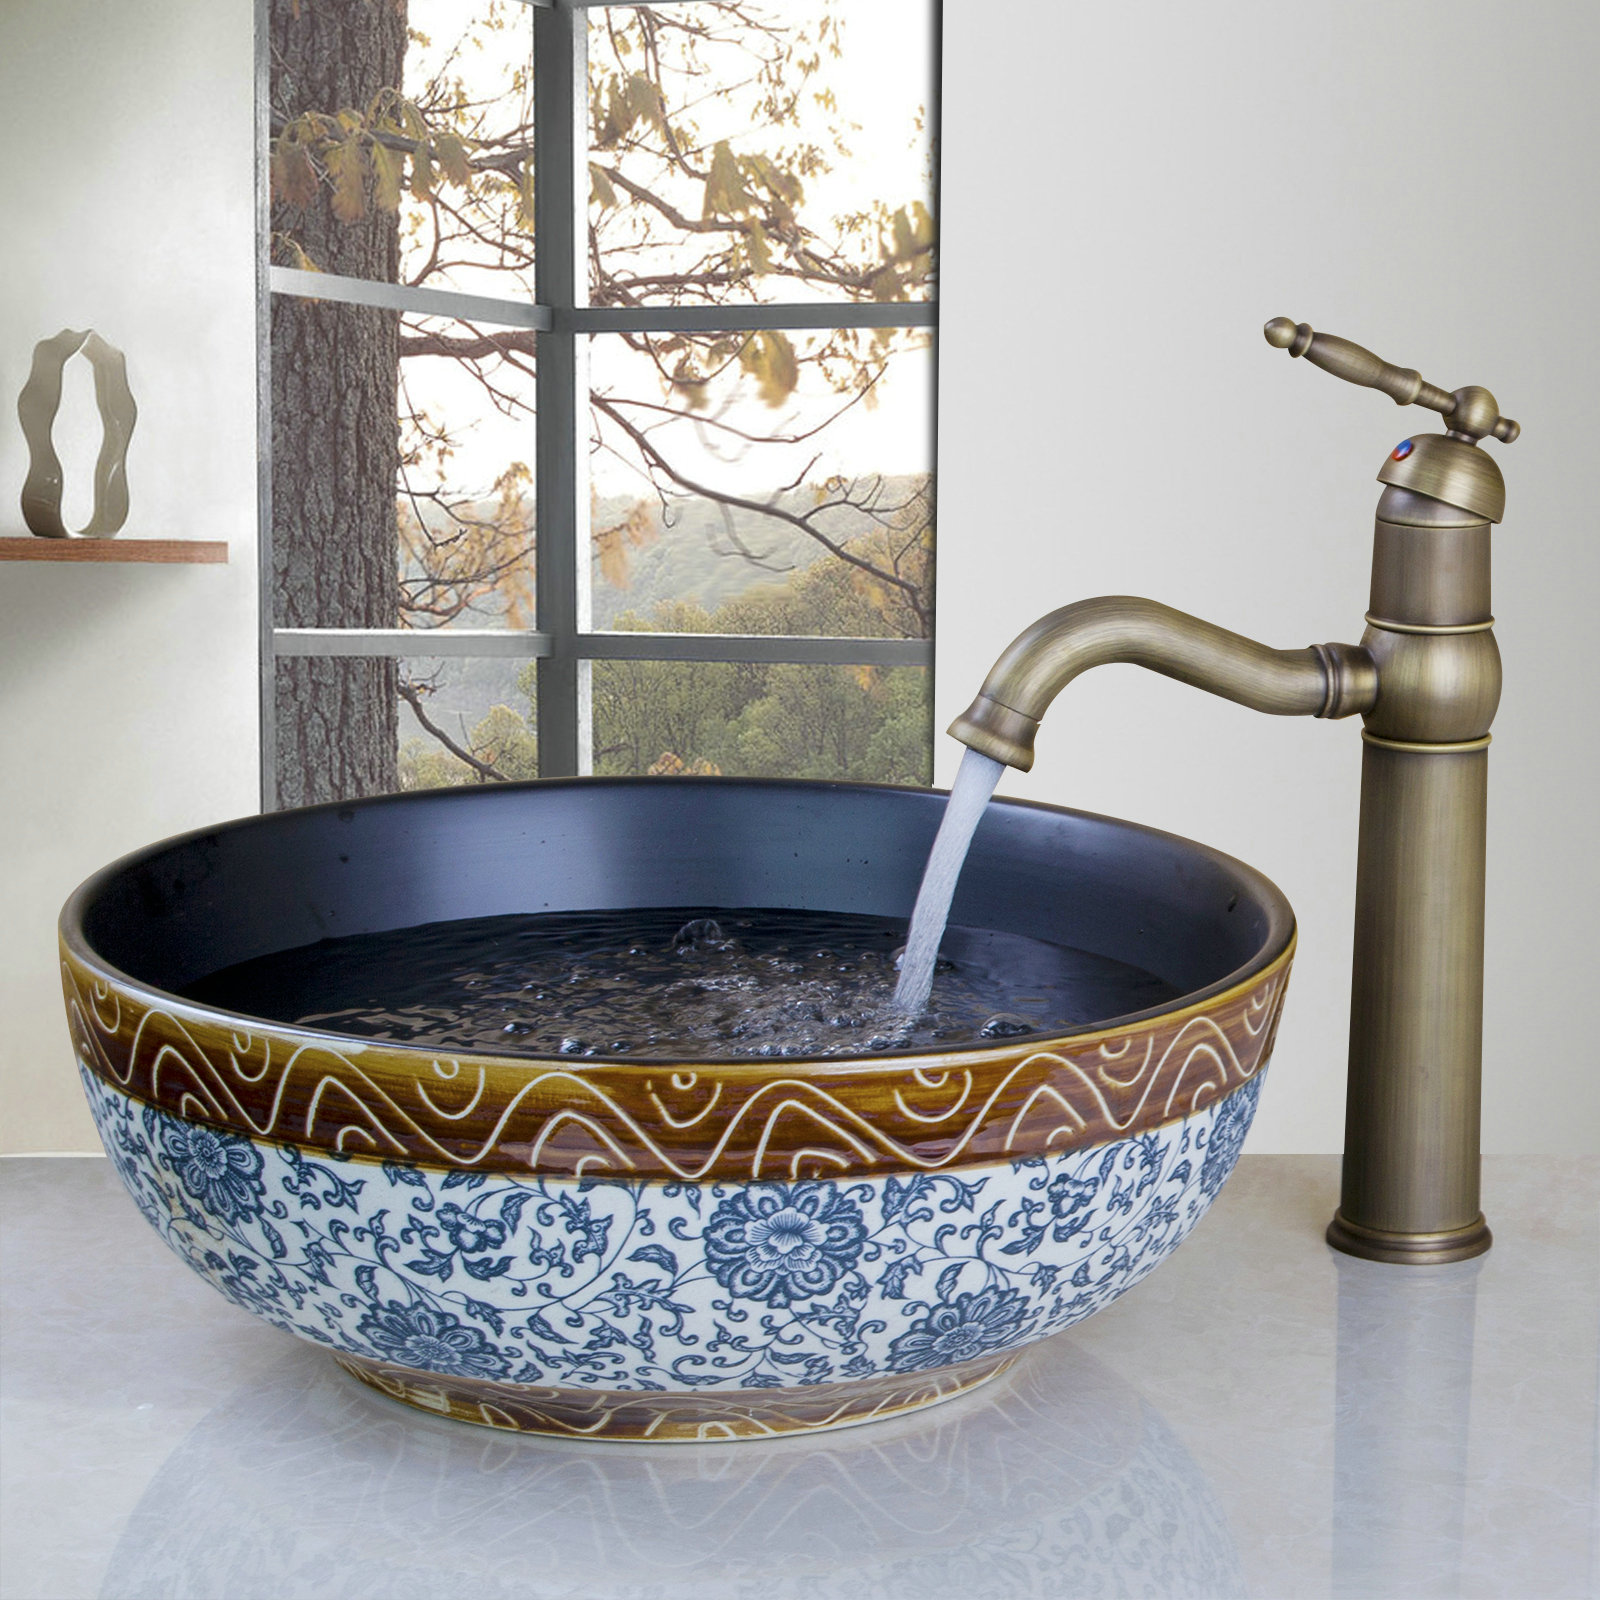 Details about Classical Ceramic Bowl Round Bathroom Vessel Sink Basin  Antique Brass Faucet Set